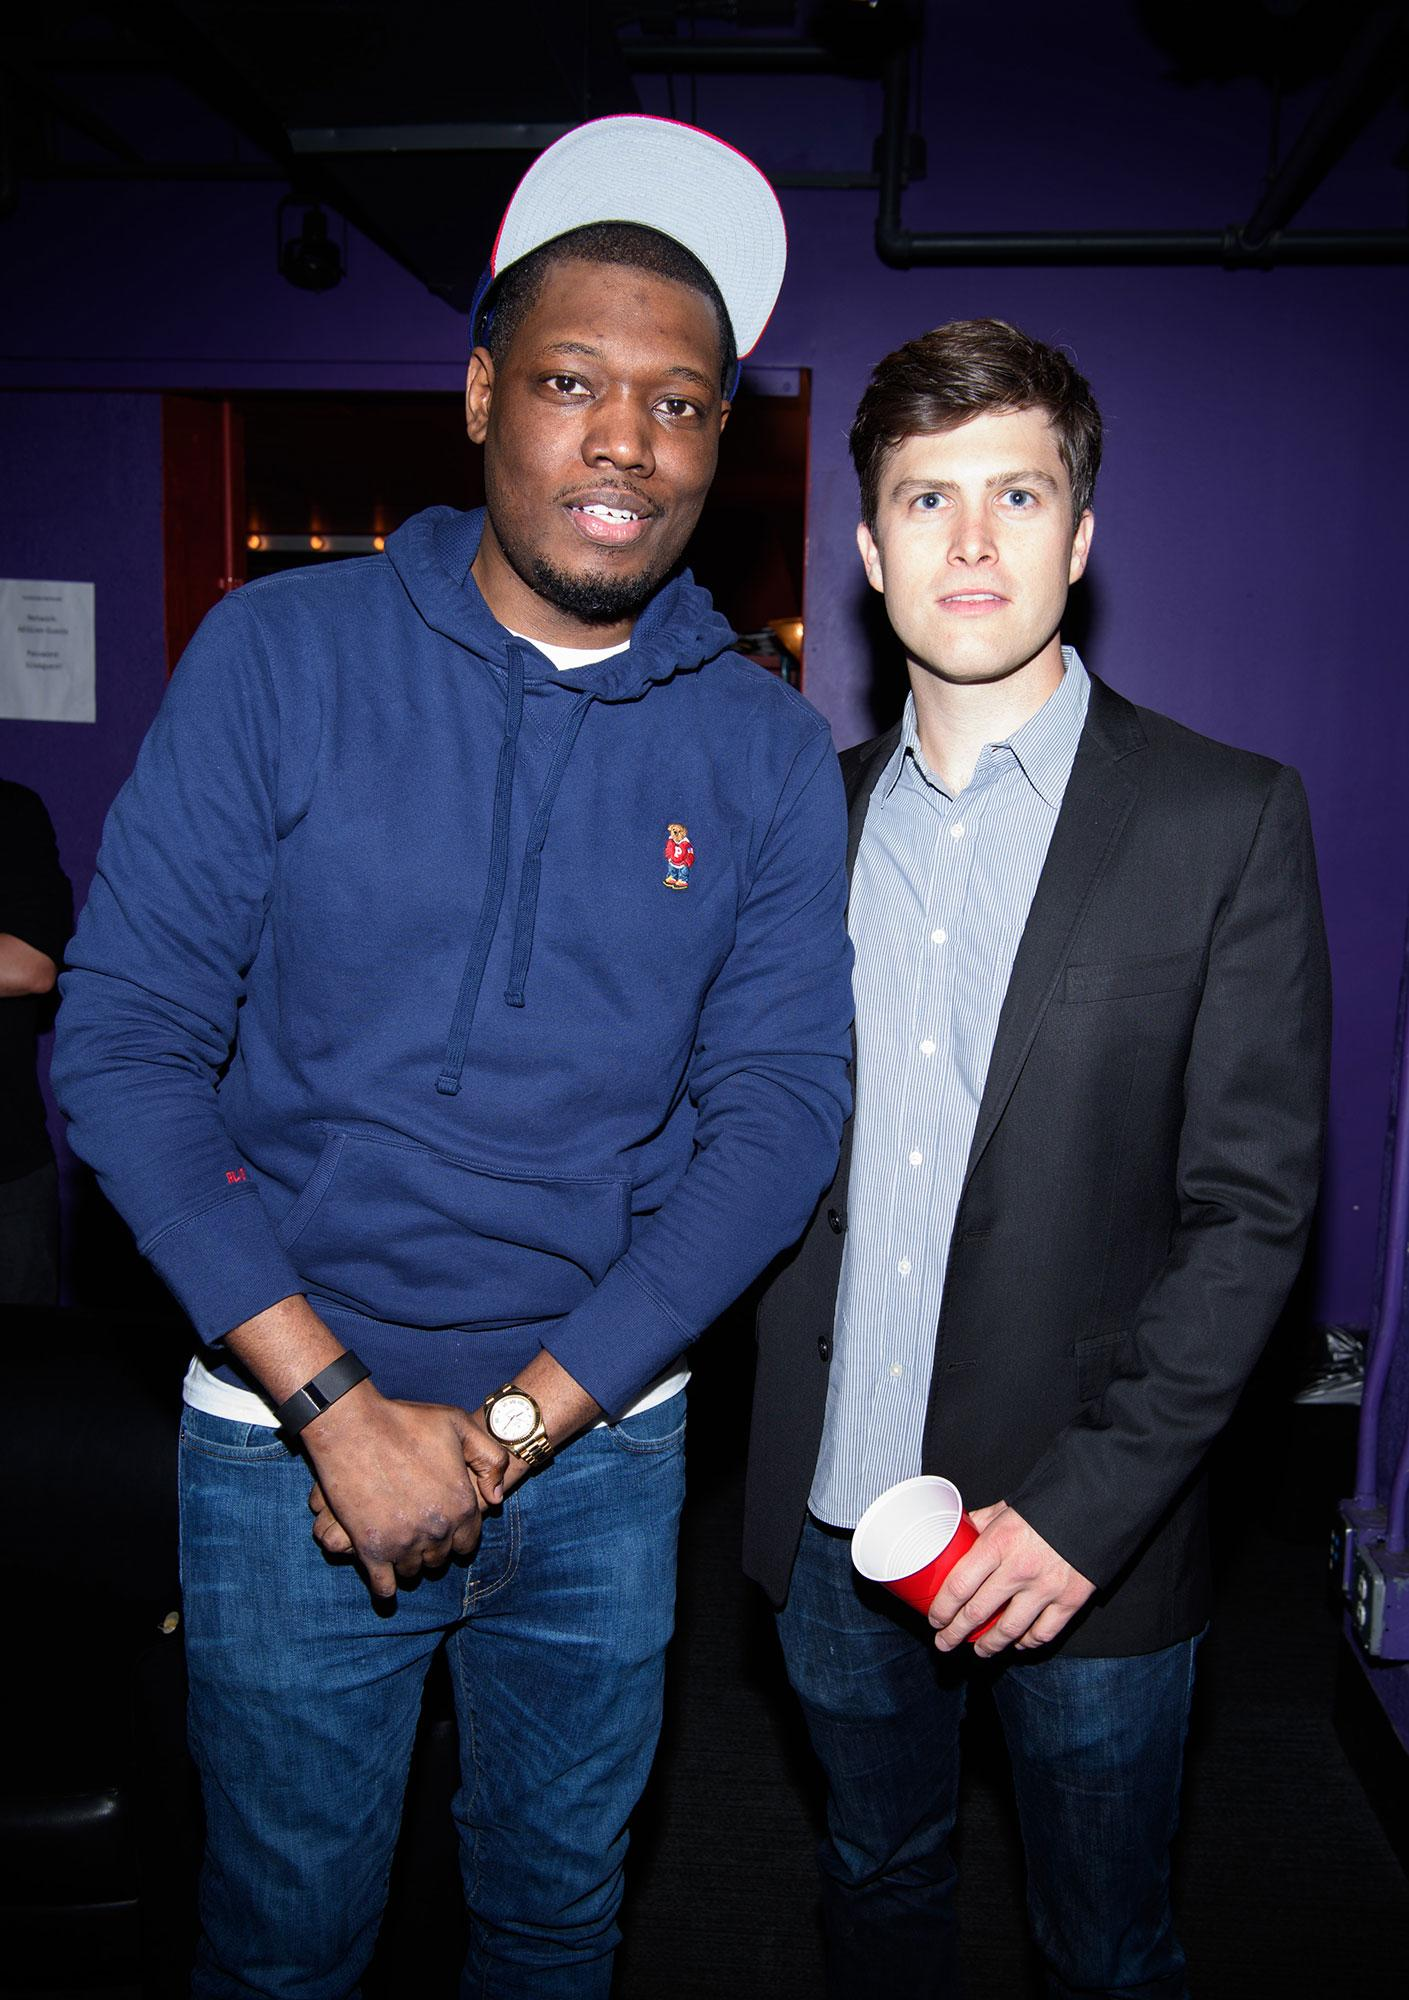 Colin Jost And Michael Che 25 Things You Don T Know About Us